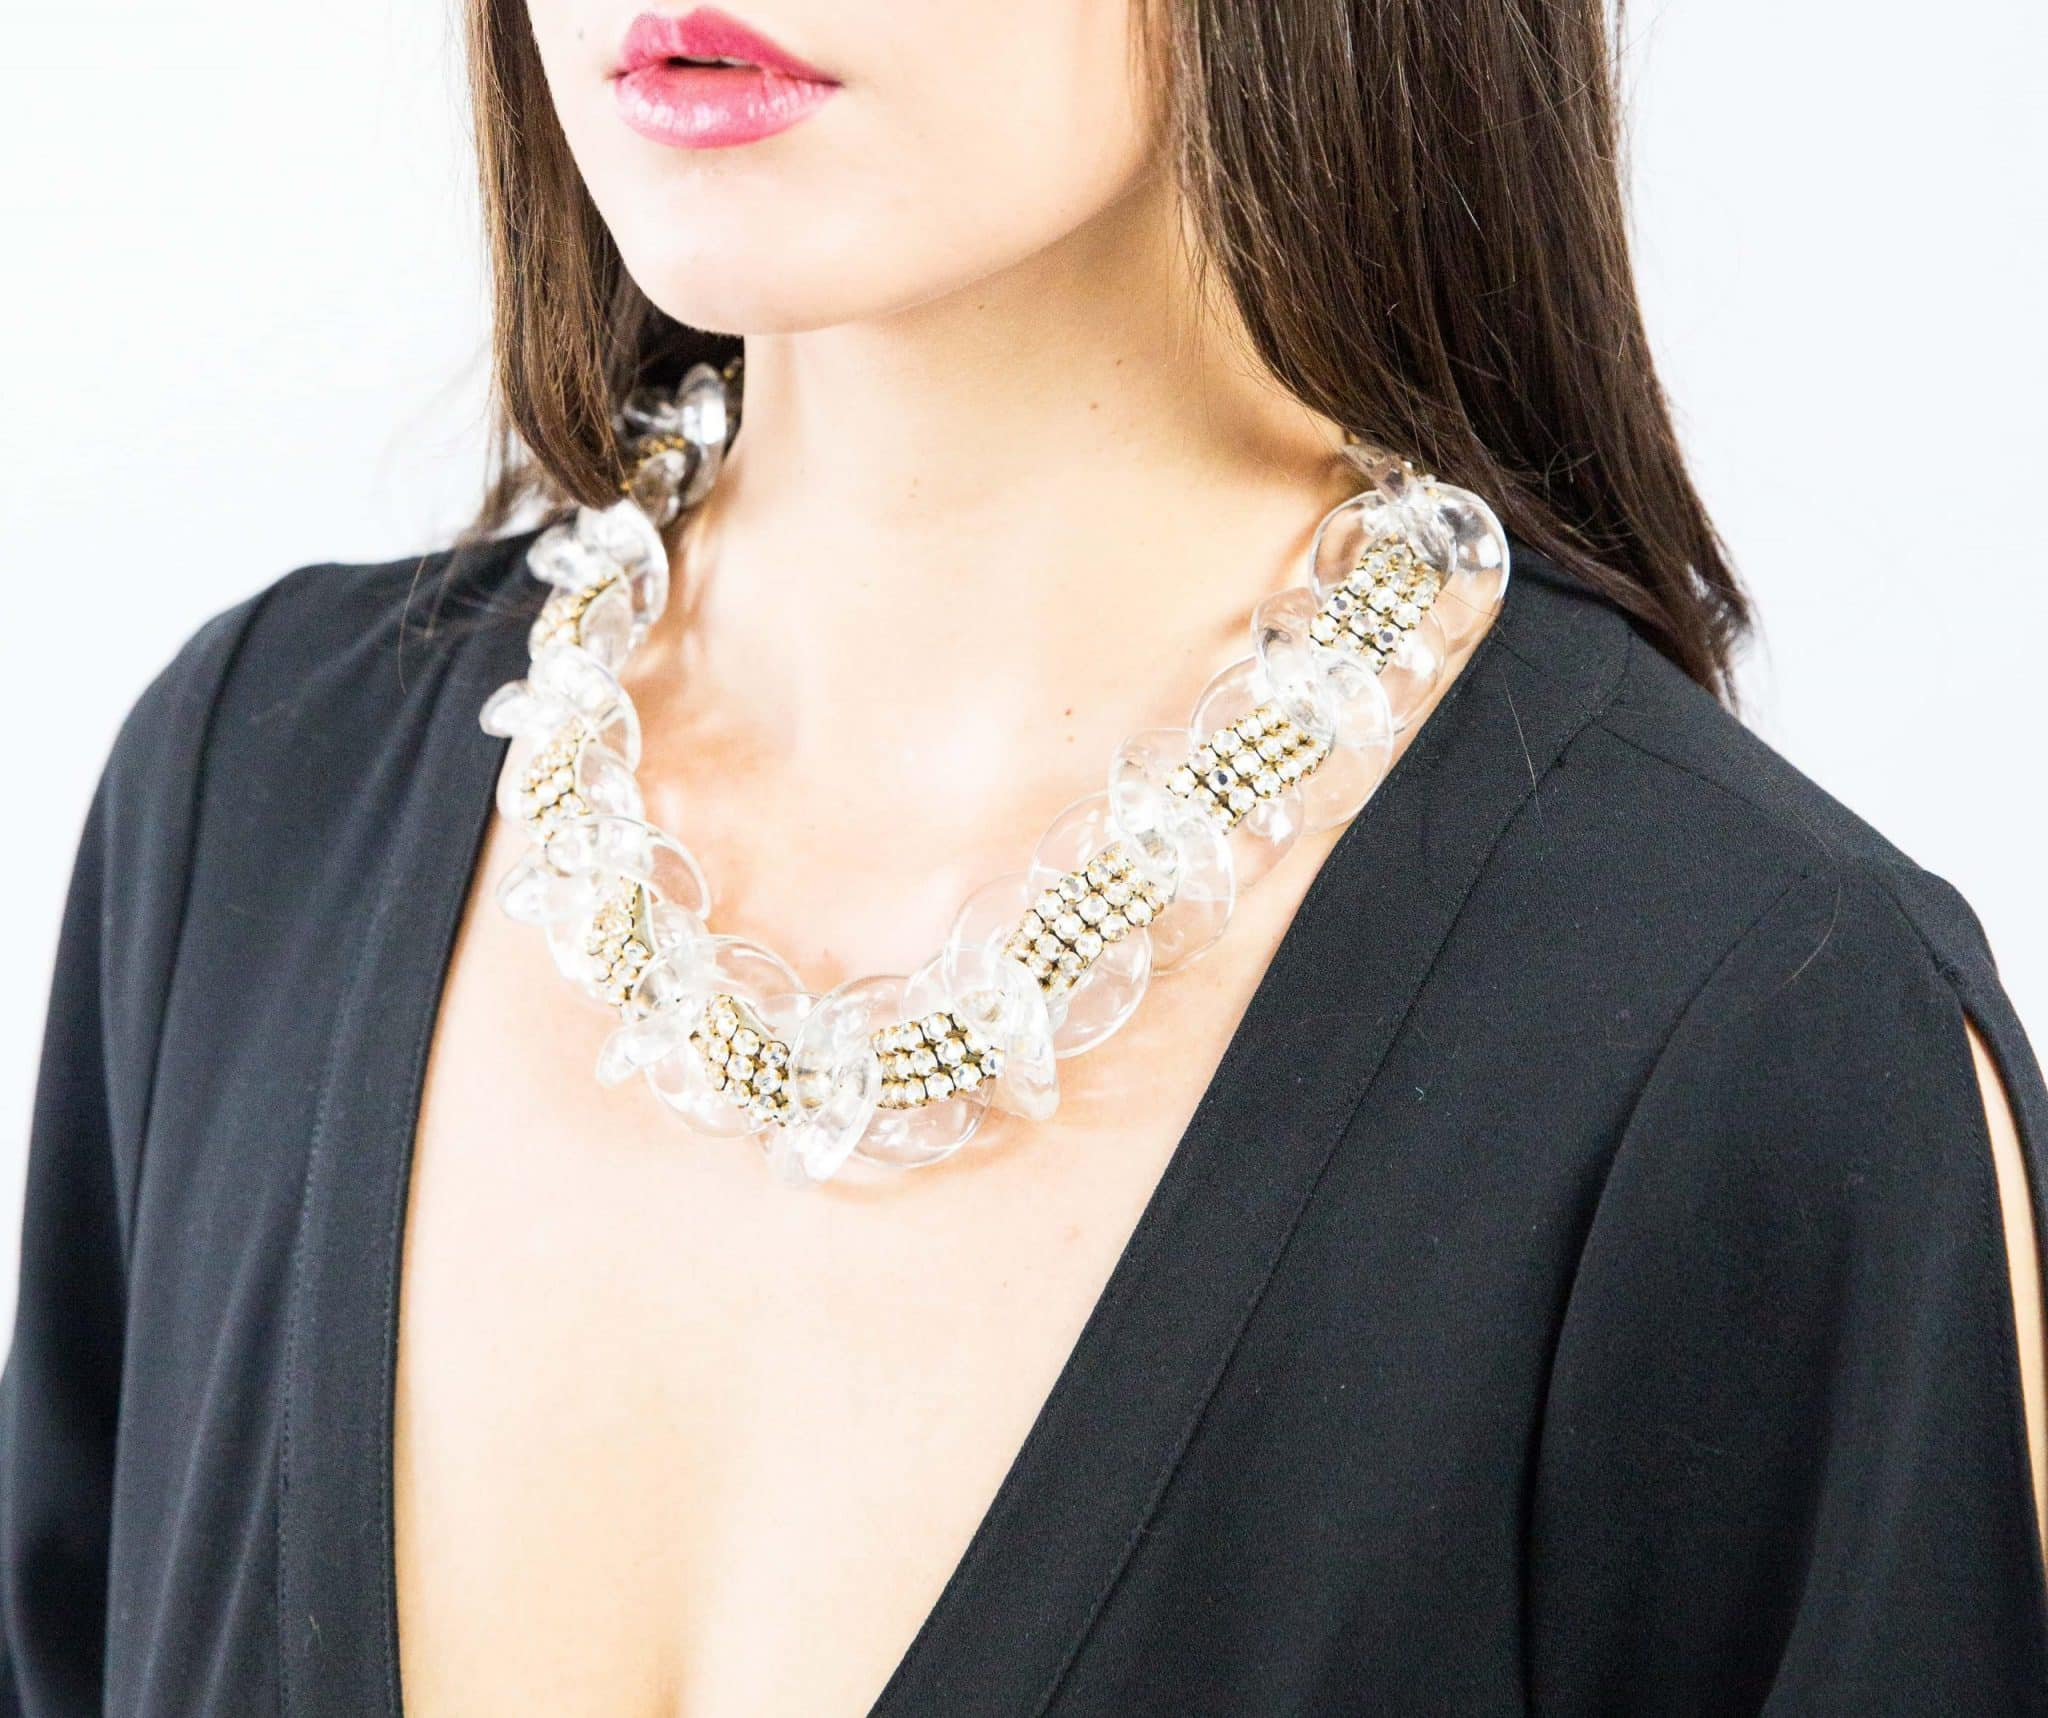 Clear Charm Necklace with white crystals